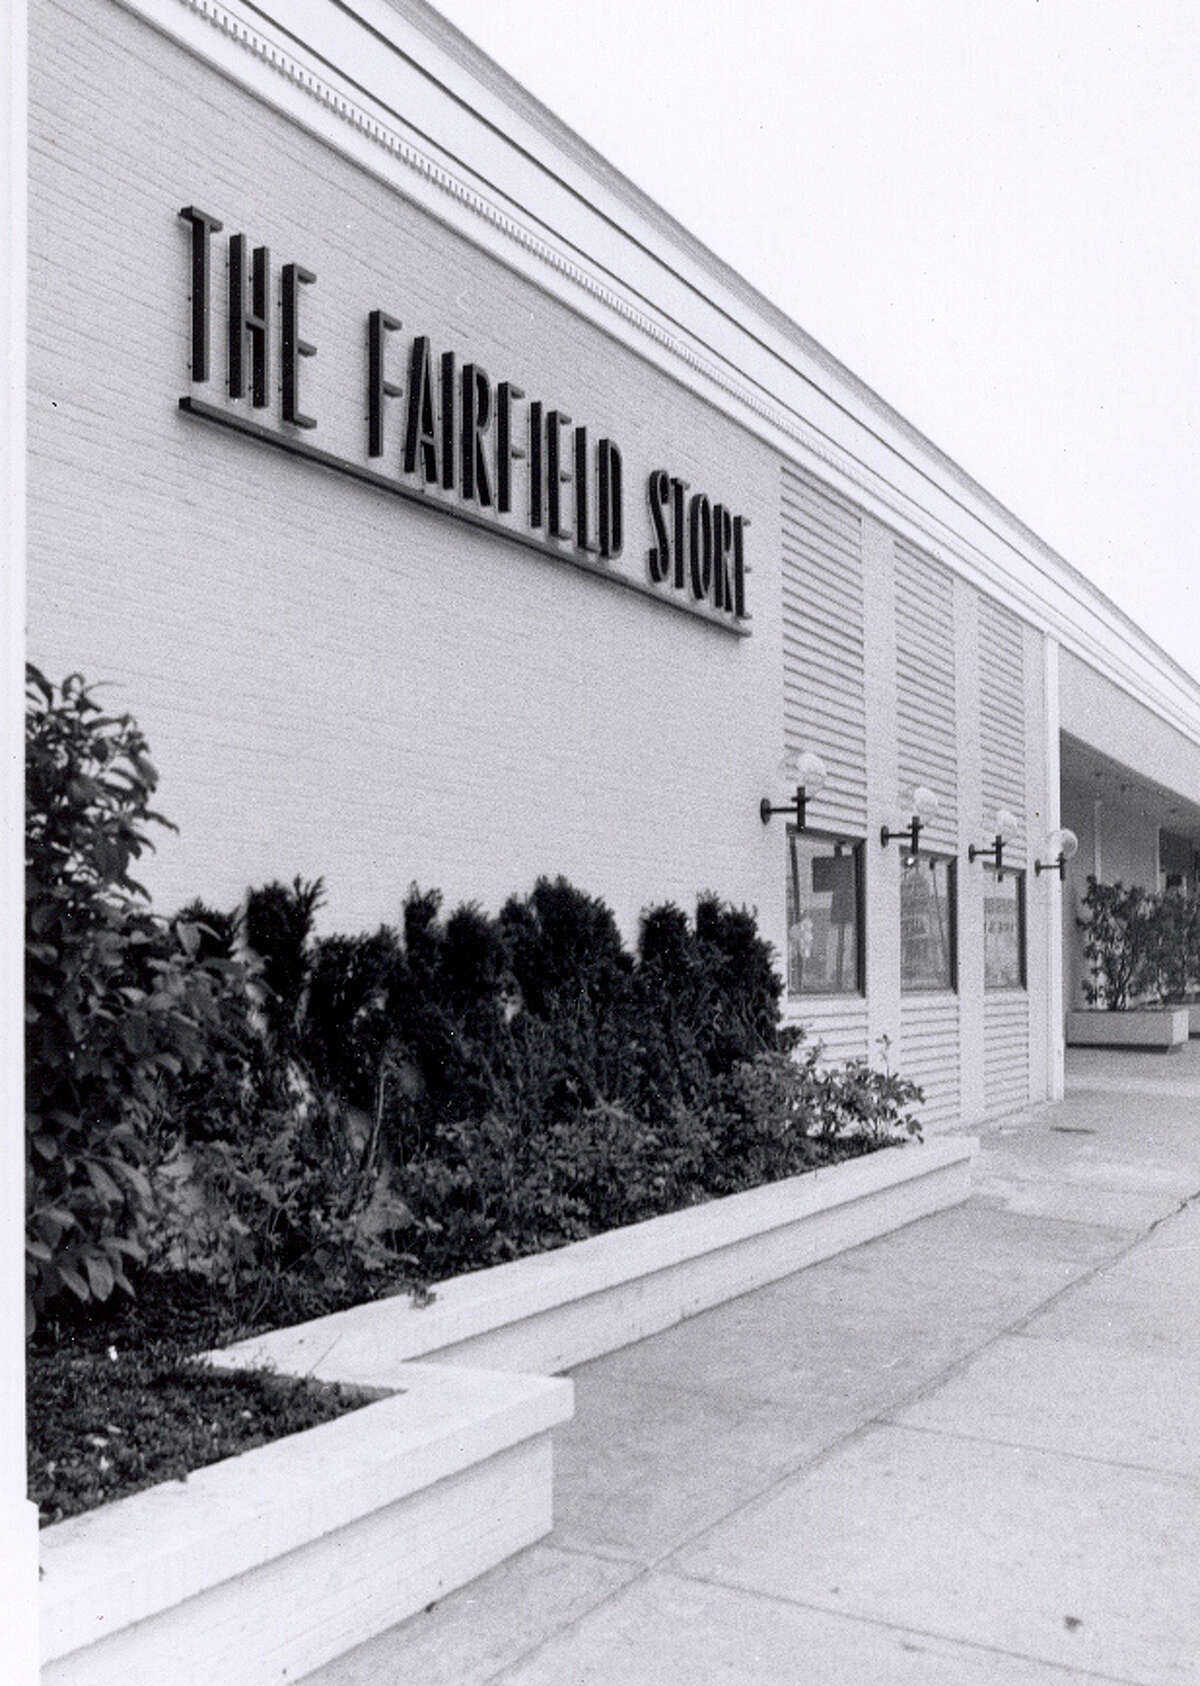 The Fairfield Store, shown here about 1965, was for 75 years the anchor retailer in downtown Fairfield. FAIRFIELD CITIZEN, CT 1/29/13